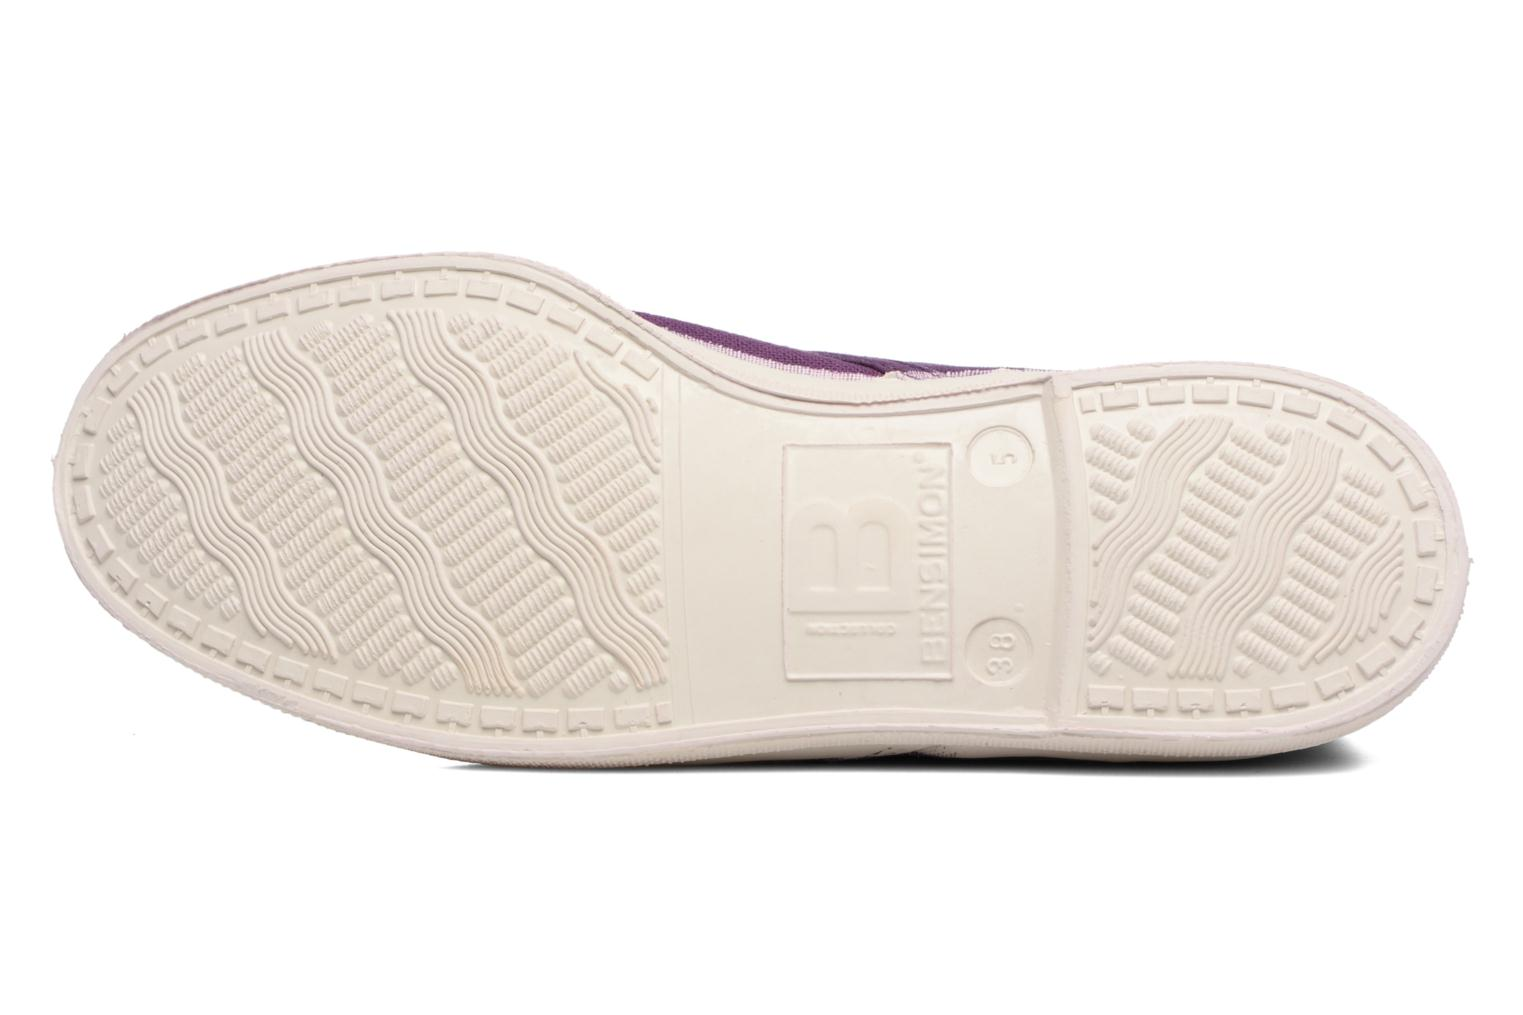 Lie De Vin Bensimon Tennis New Nils (Violet)